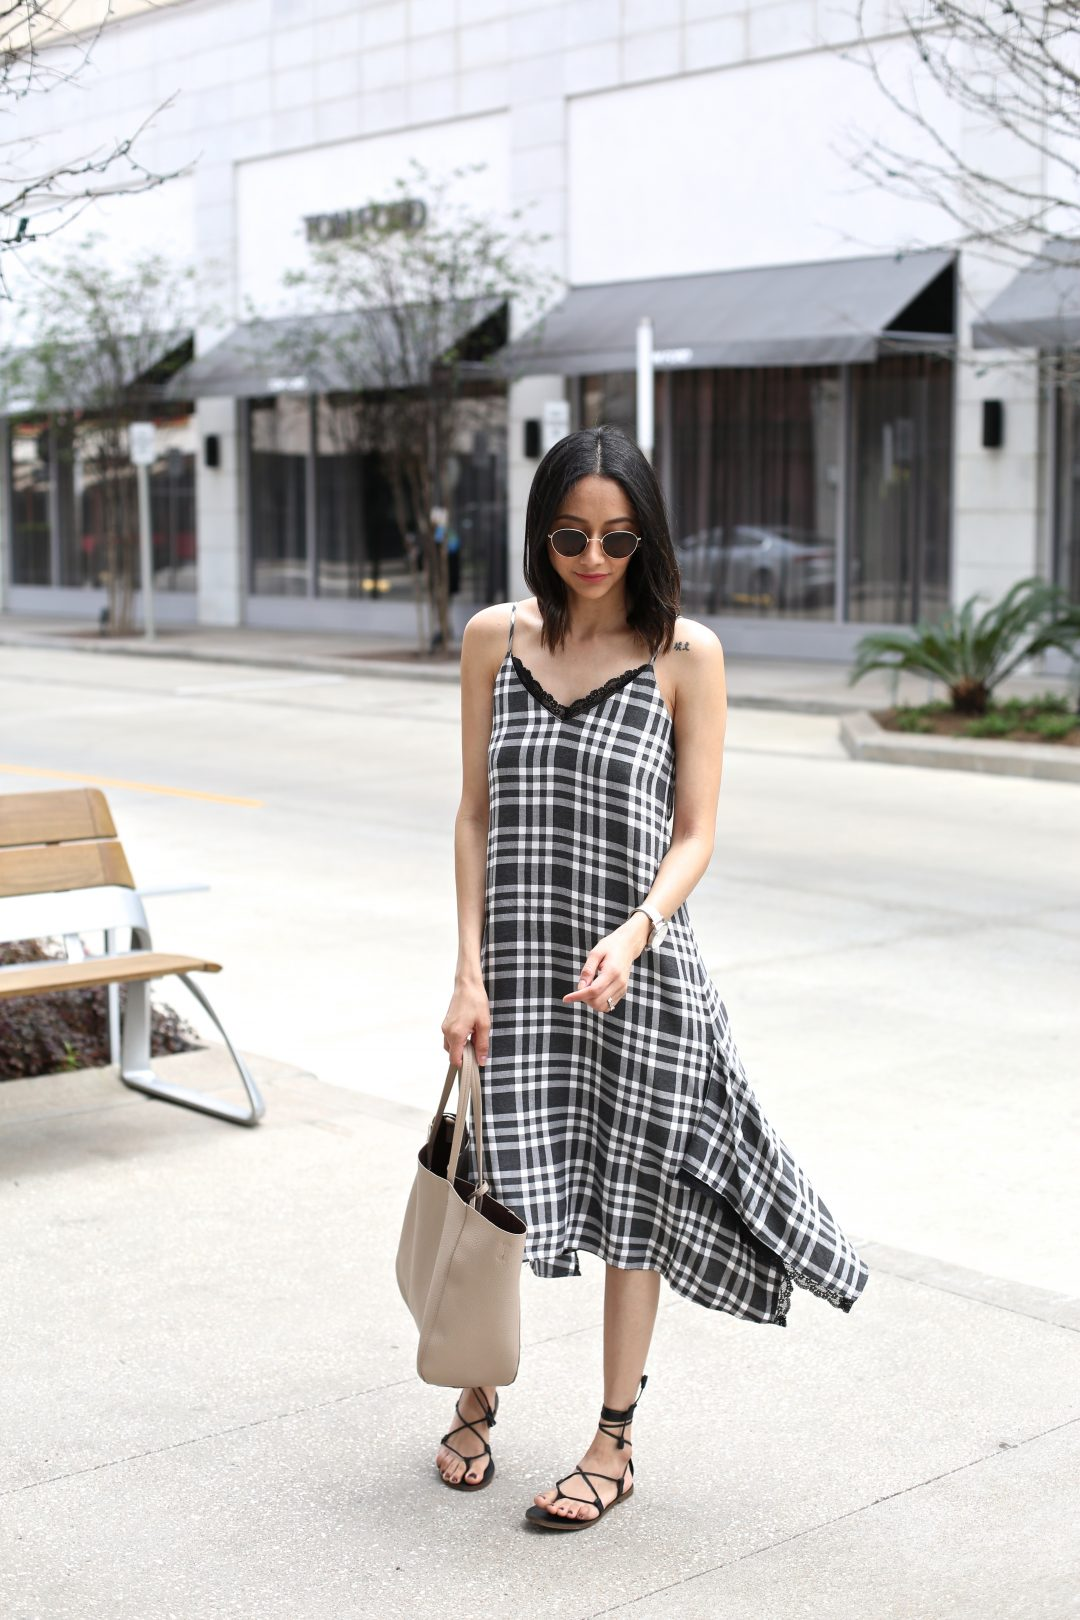 Style blogger Lilly Beltran wearing a casual look in a black plaid dress and lace-up sandals